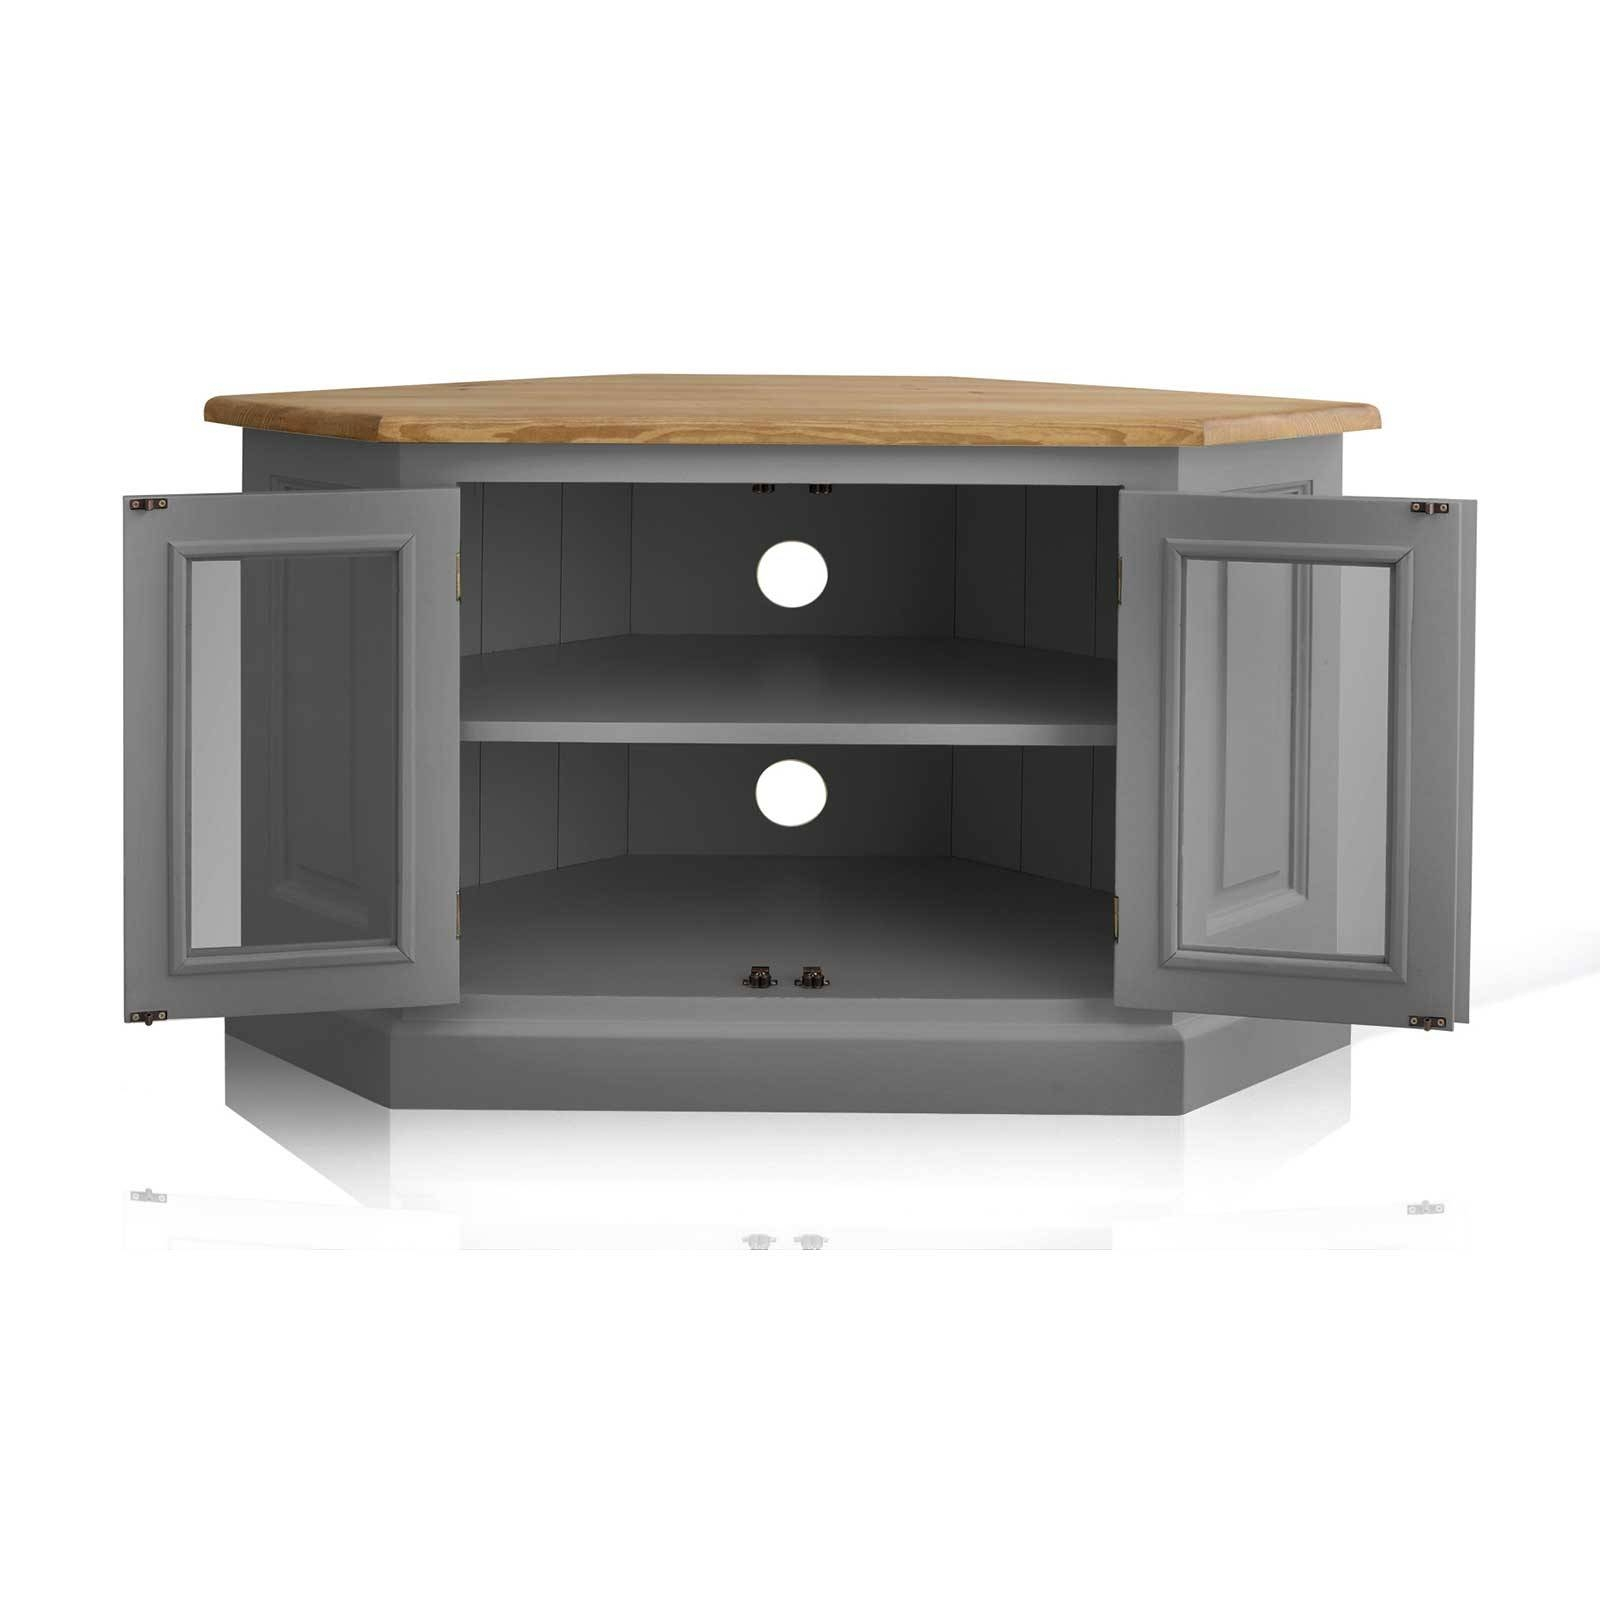 Tv Stand Fireplace Minimalist Ikea Black Grey Corner Threshold For Casey Grey 74 Inch Tv Stands (View 24 of 30)